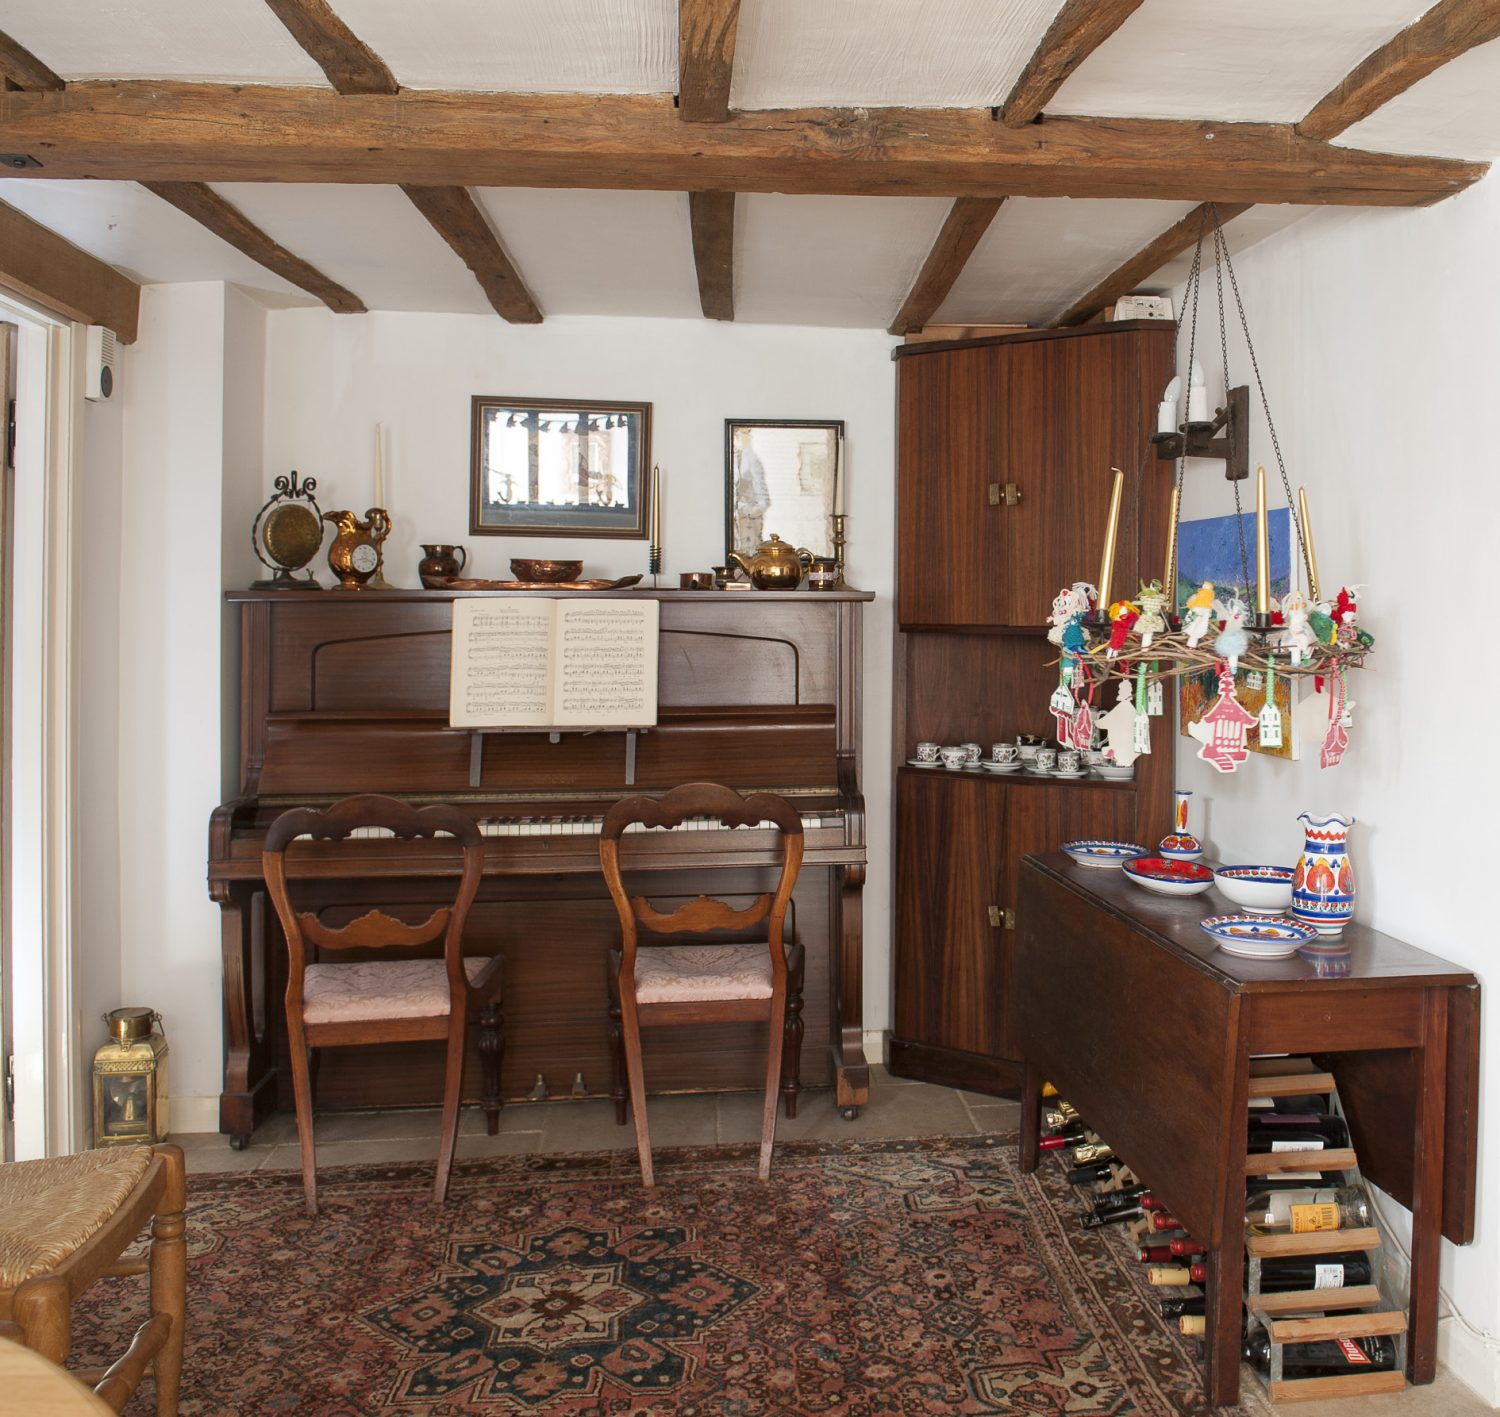 "Suzanne and her family had lived in their previous house for twenty-one years, so moving was quite a wrench for some members of the family. ""I hadn't realised quite how much it meant to my son Alexander especially to leave the old house – but he does like the fact that there's room for two pianos here. And we're so close to the church where Alexander regularly plays the organ,"" she says"